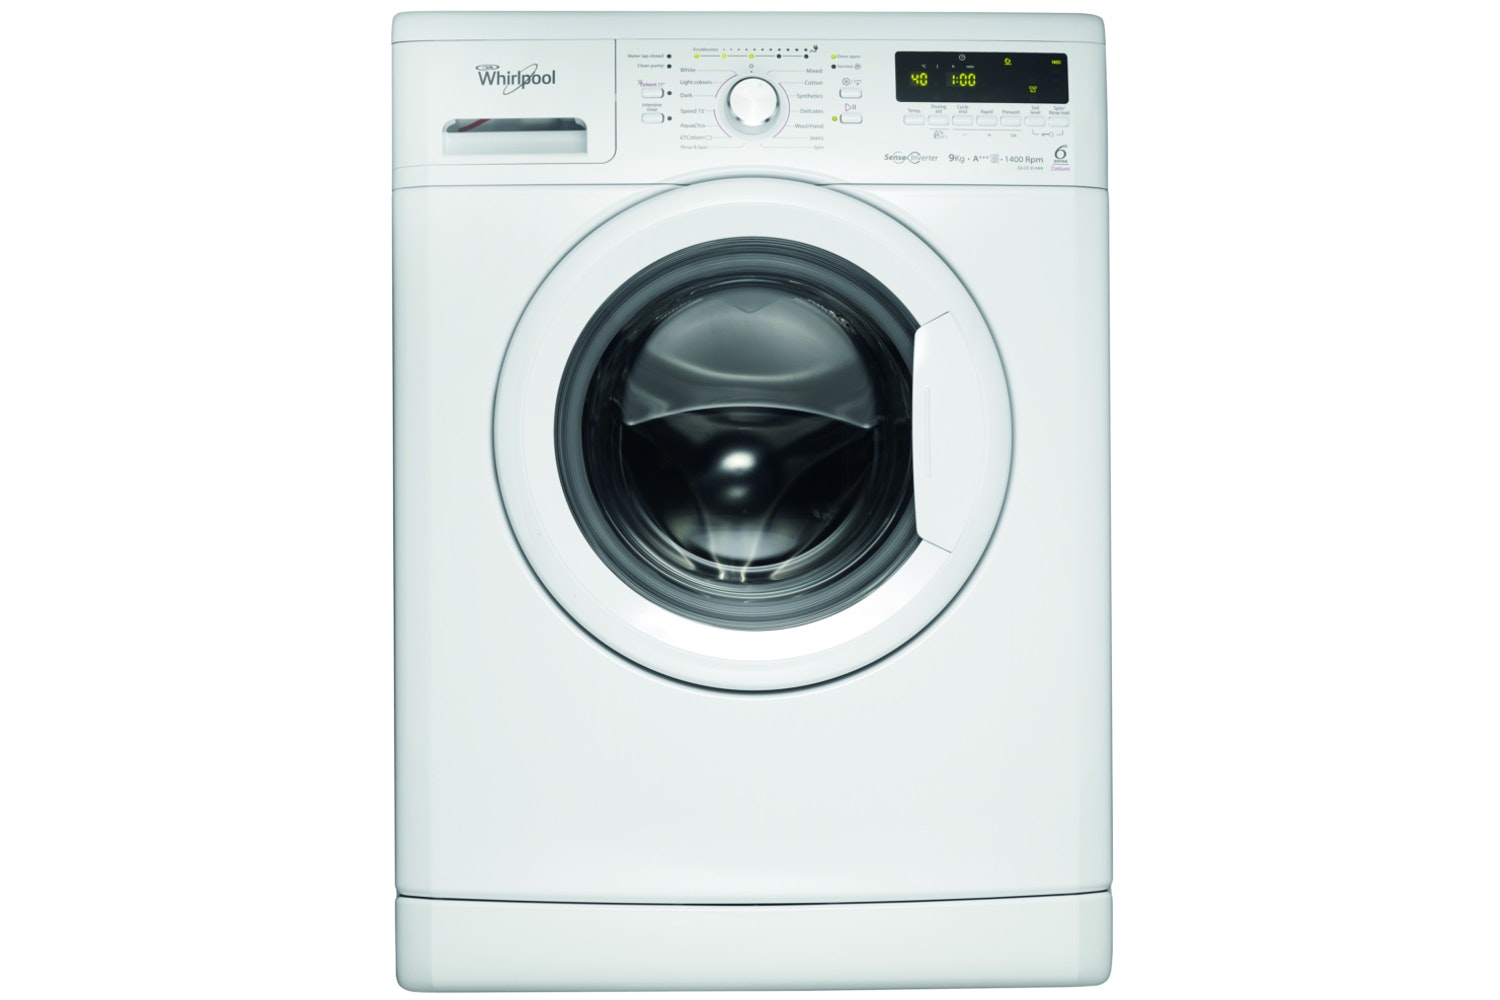 Whirlpool 9KG Washing Machine | DLCE91469